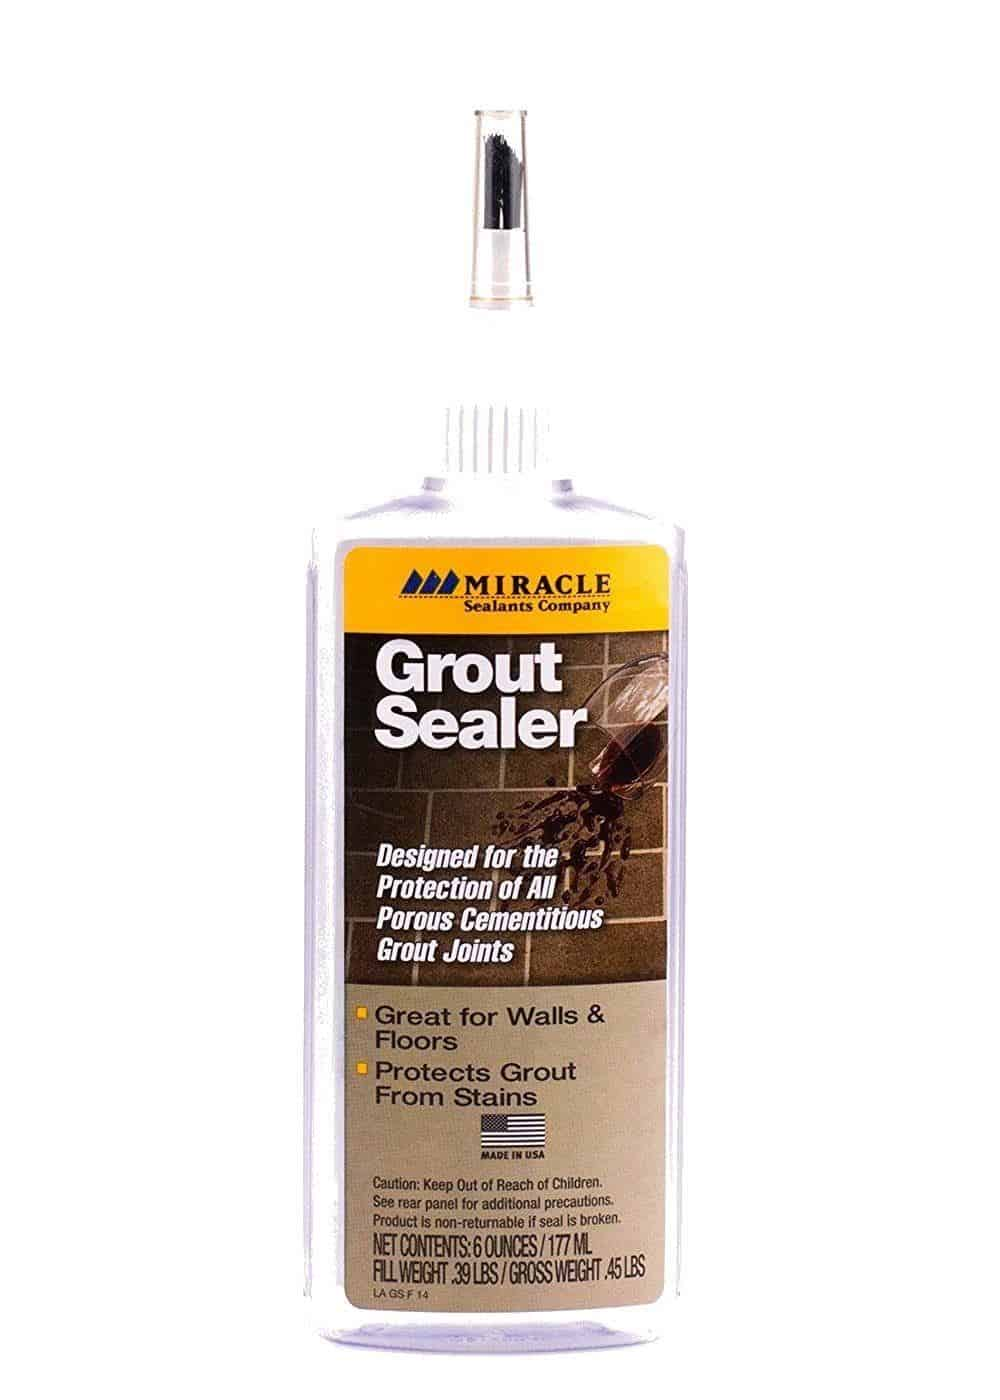 Miracle Sealants GRT SLR Grout Sealer